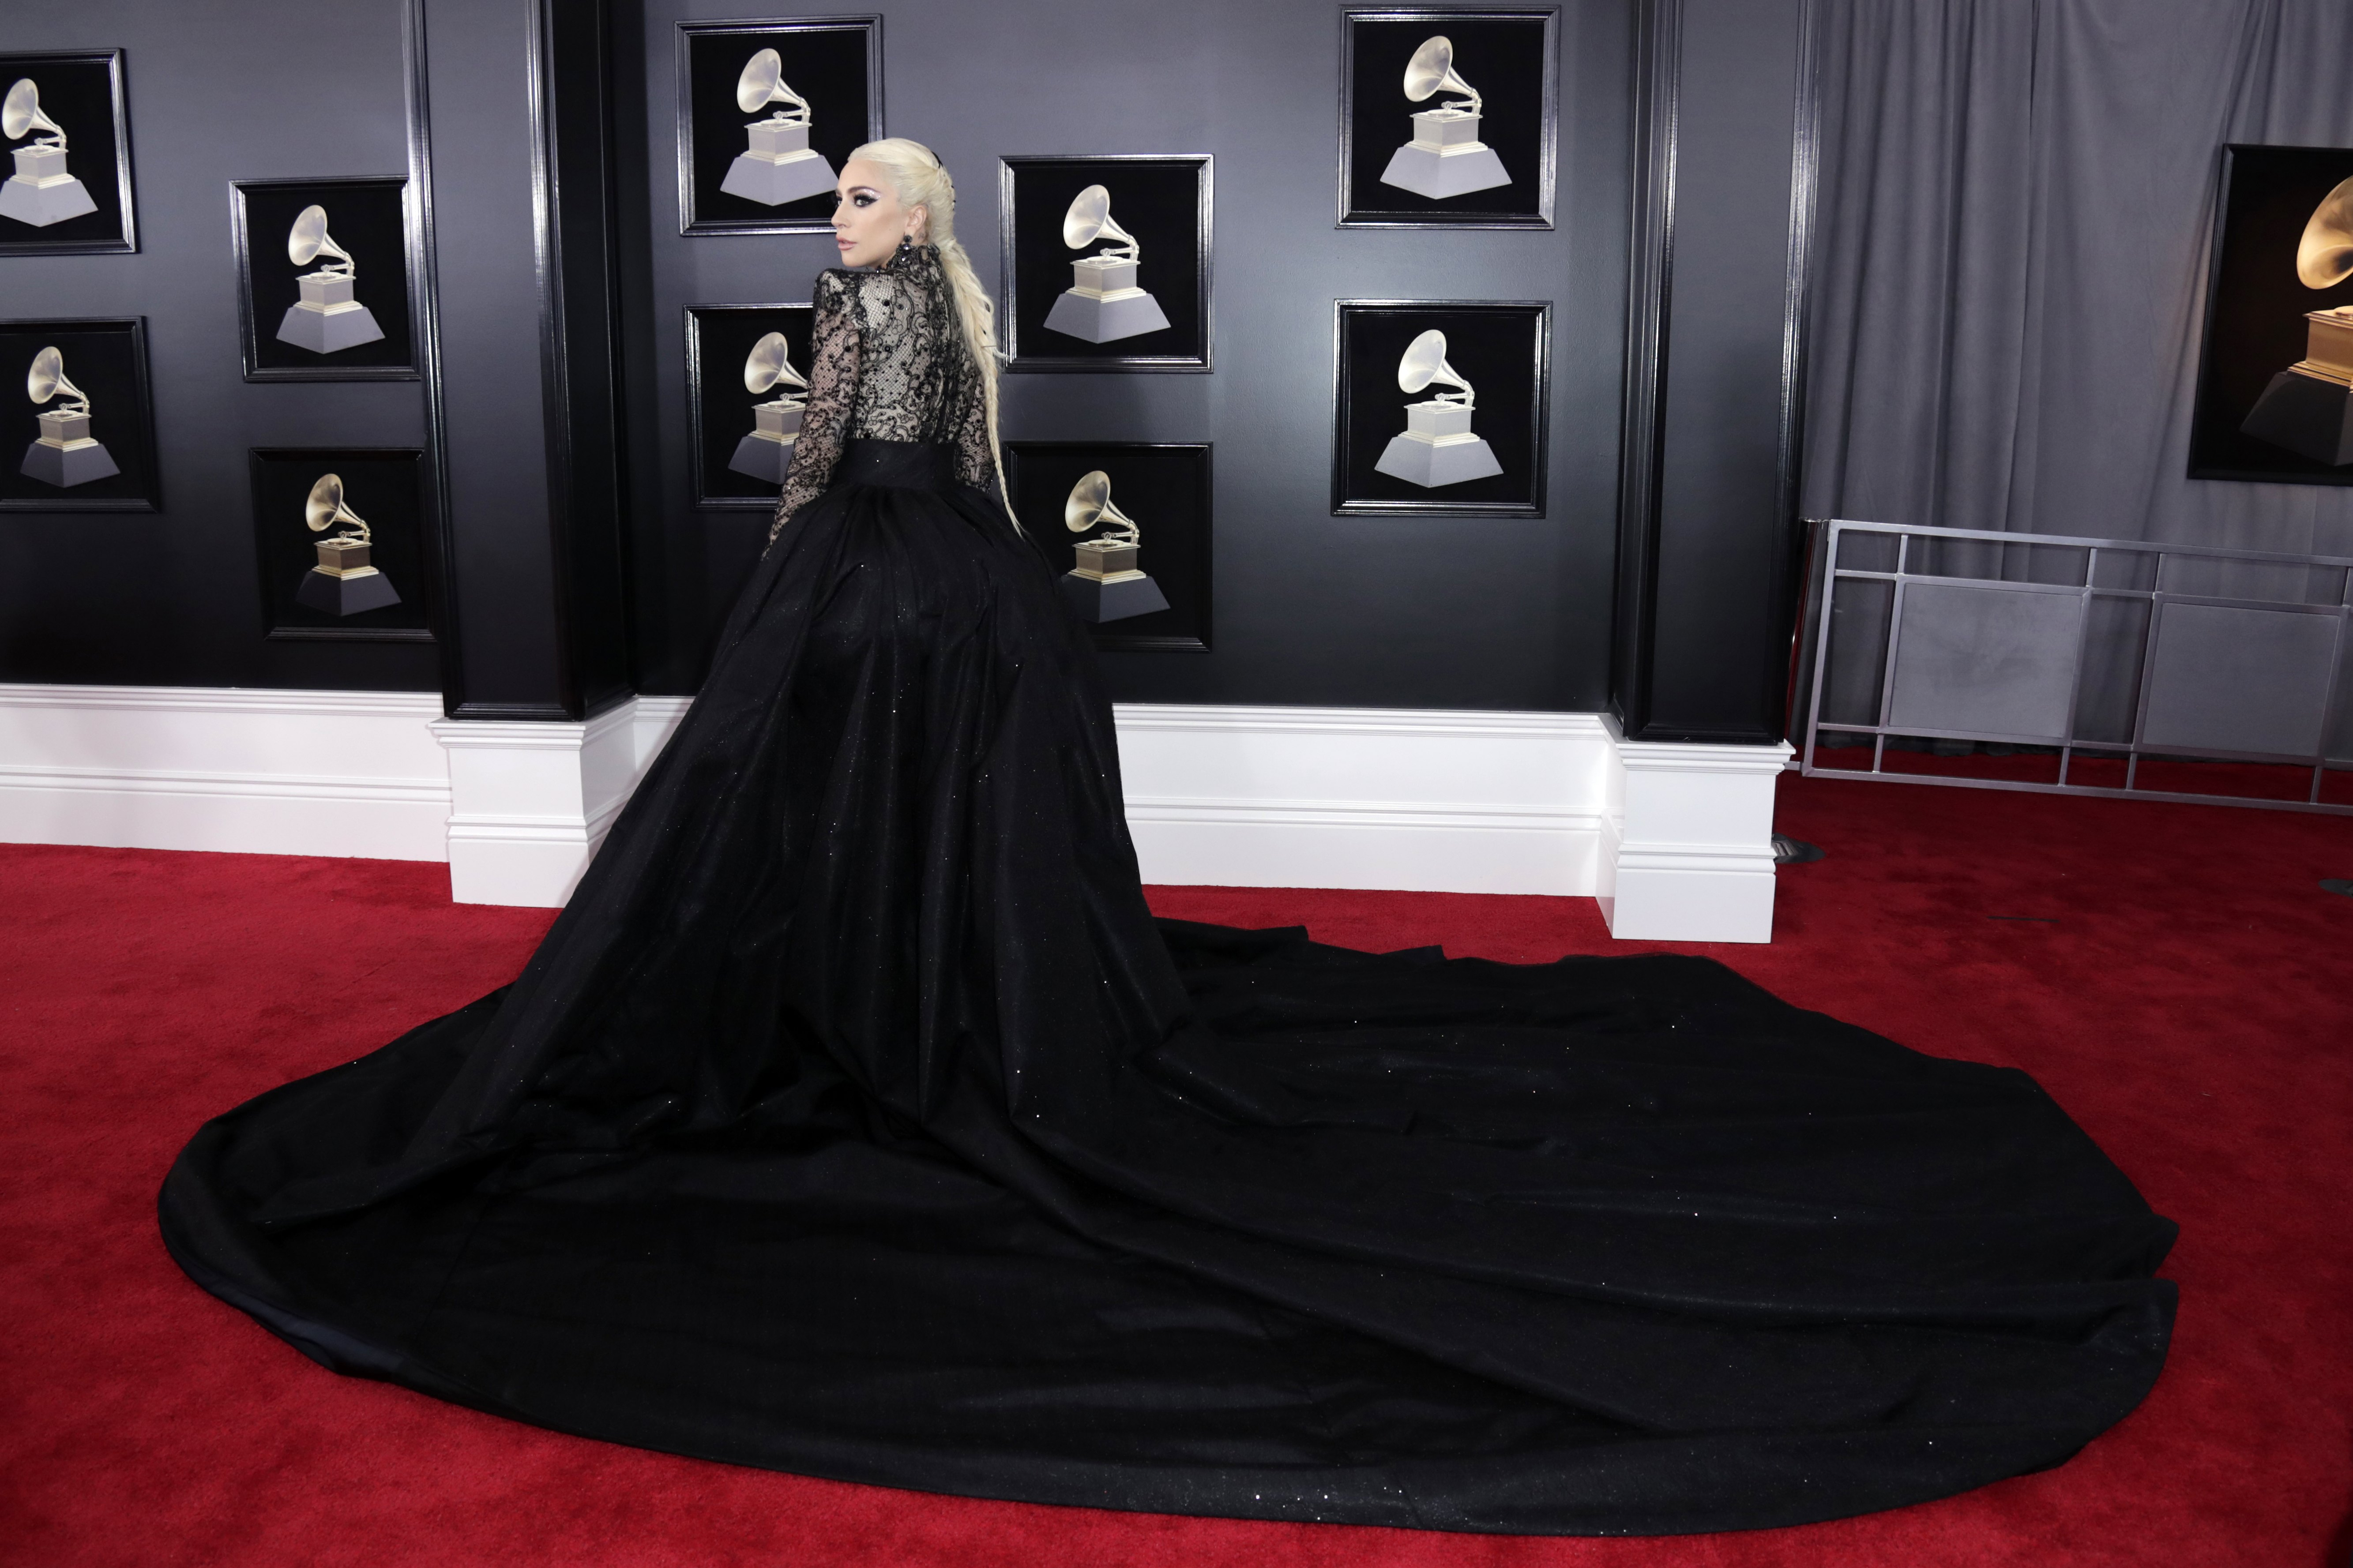 es for the 60th annual Grammy Awards ceremony at Madison Square Garden in New York, New York, USA, Jan. 28, 2018.